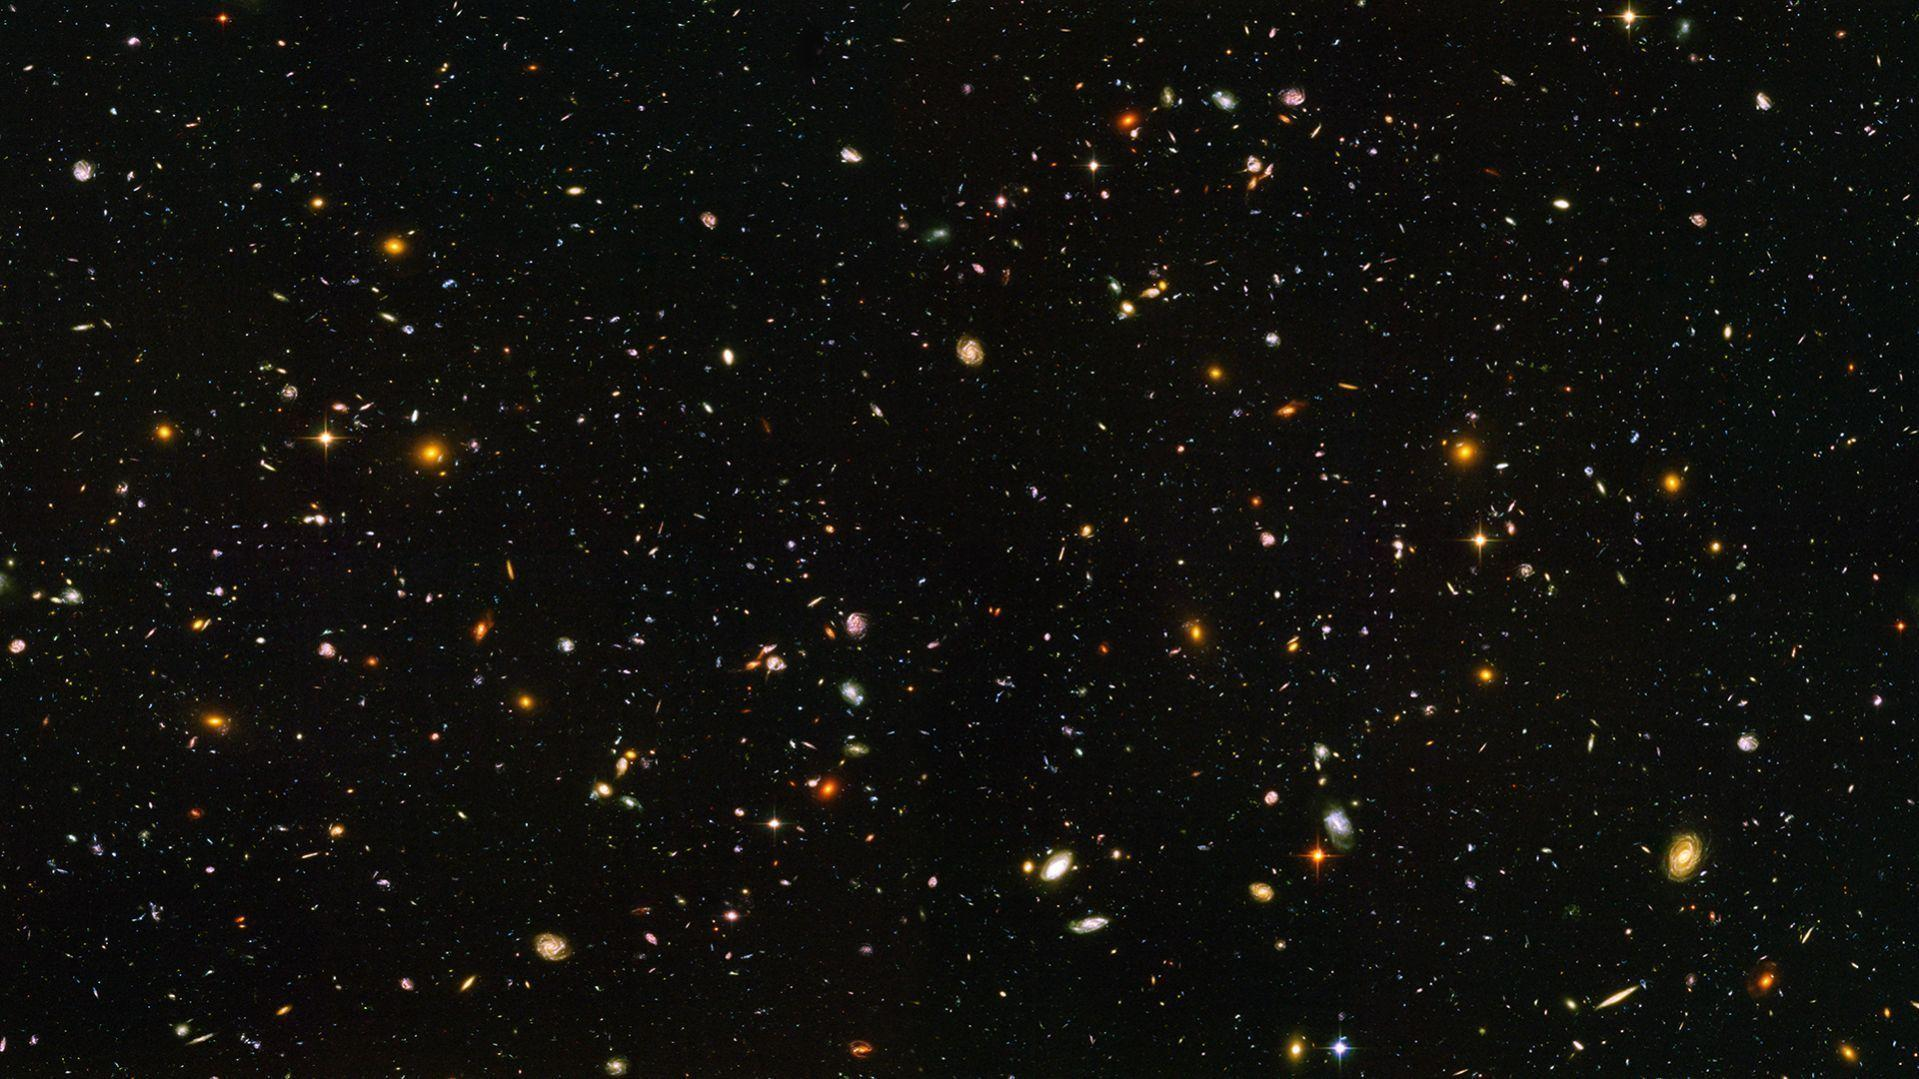 hubble deep field wallpaper 1600x1200-#16